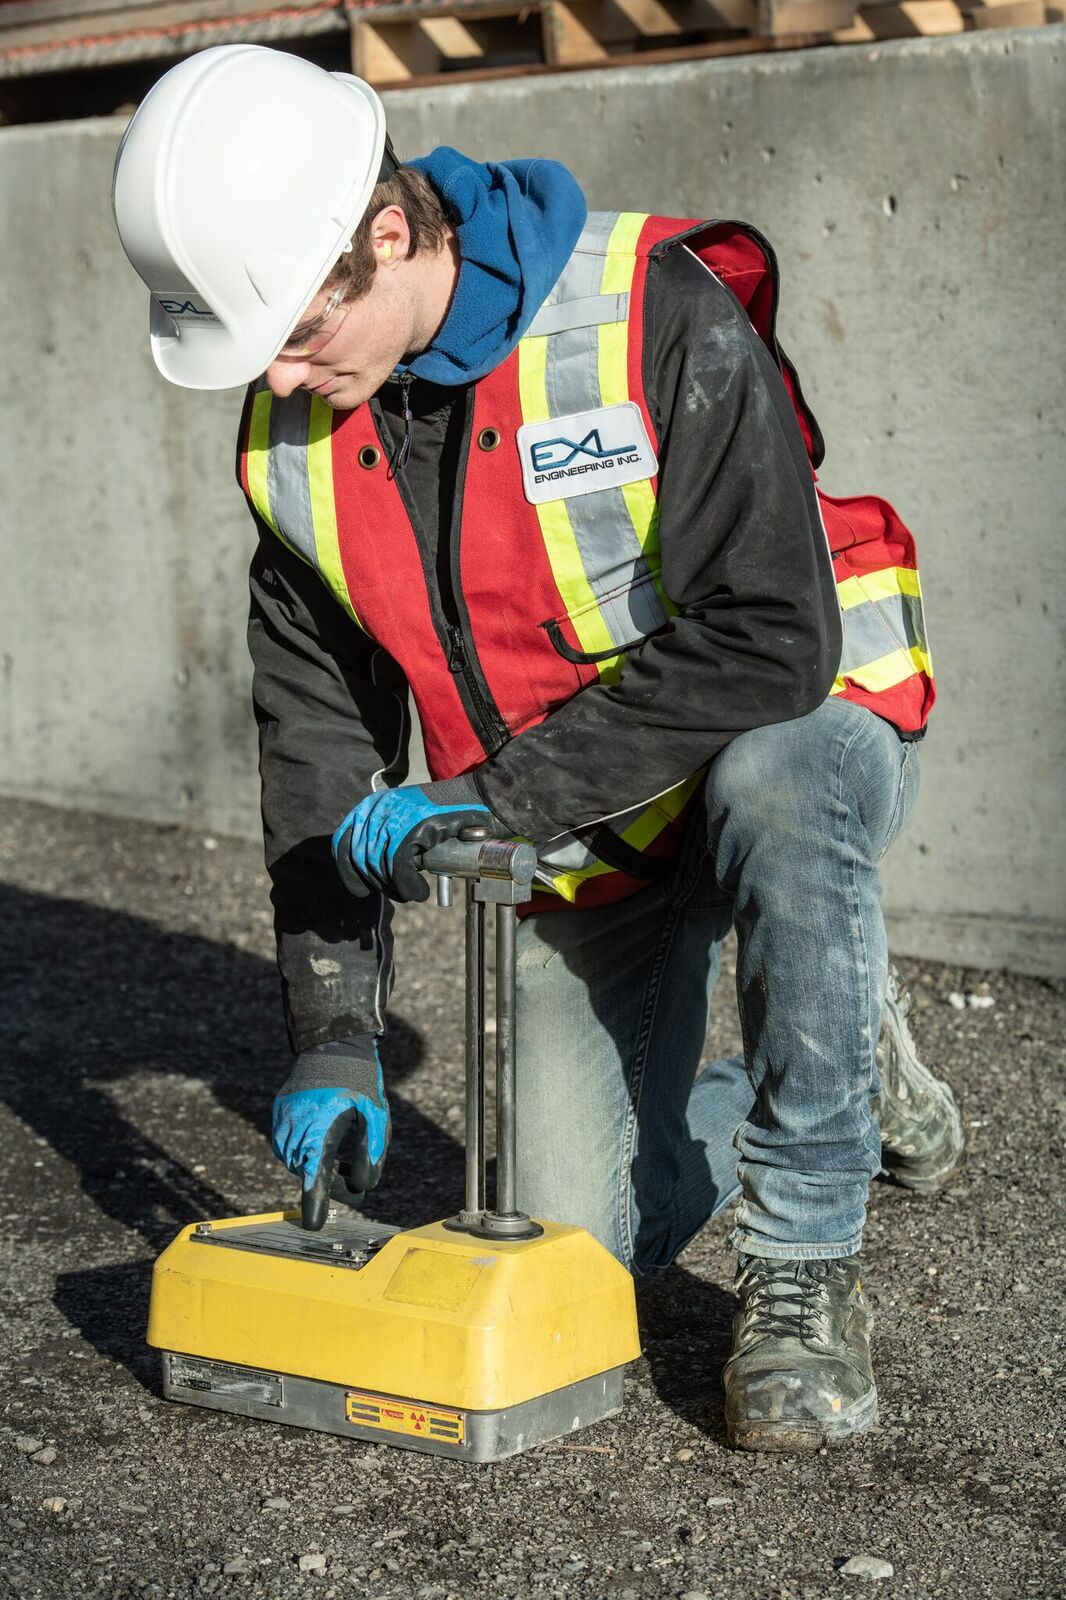 Soils testing for construction projects